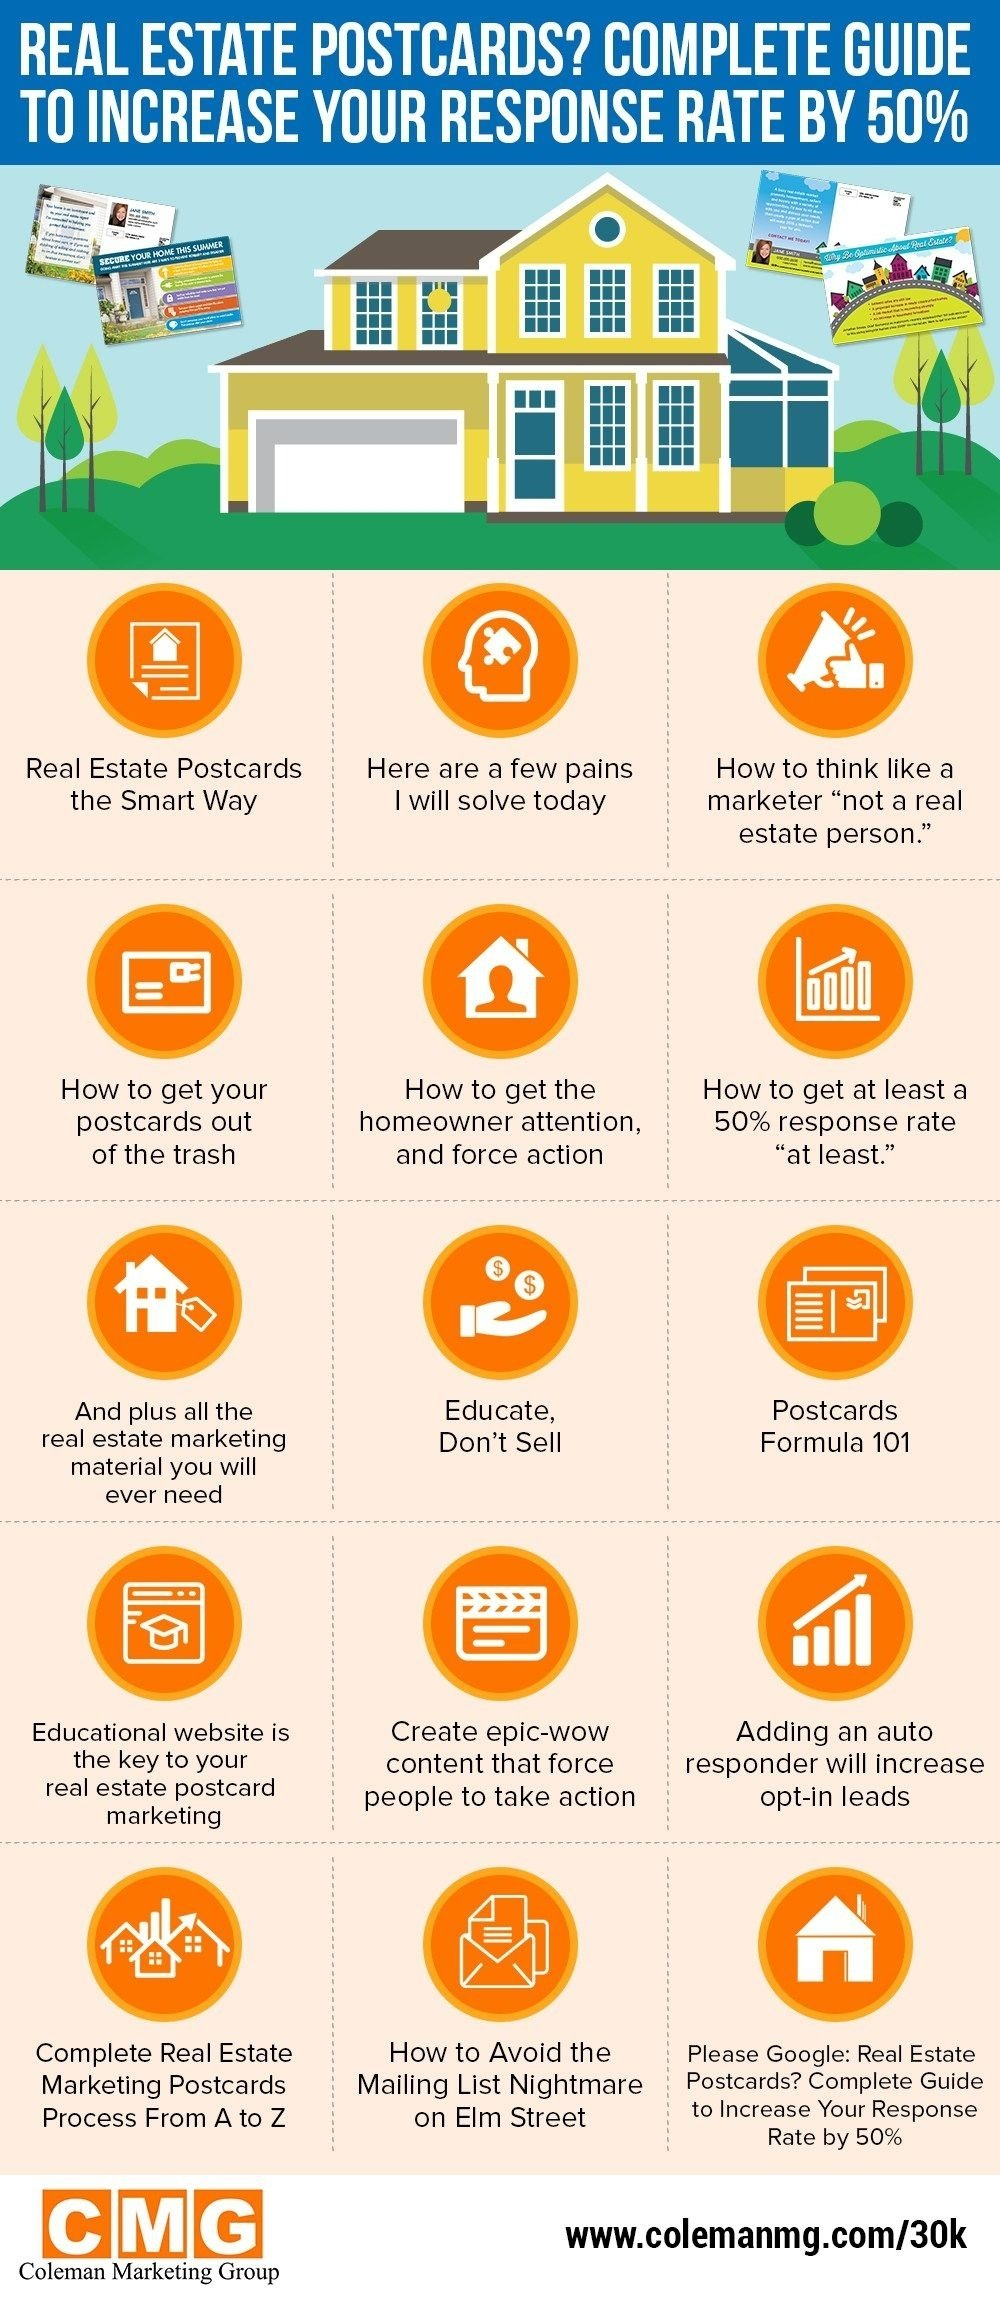 10 Spectacular Real Estate Postcard Marketing Ideas real estate postcards the smart way when it comes to direct mail